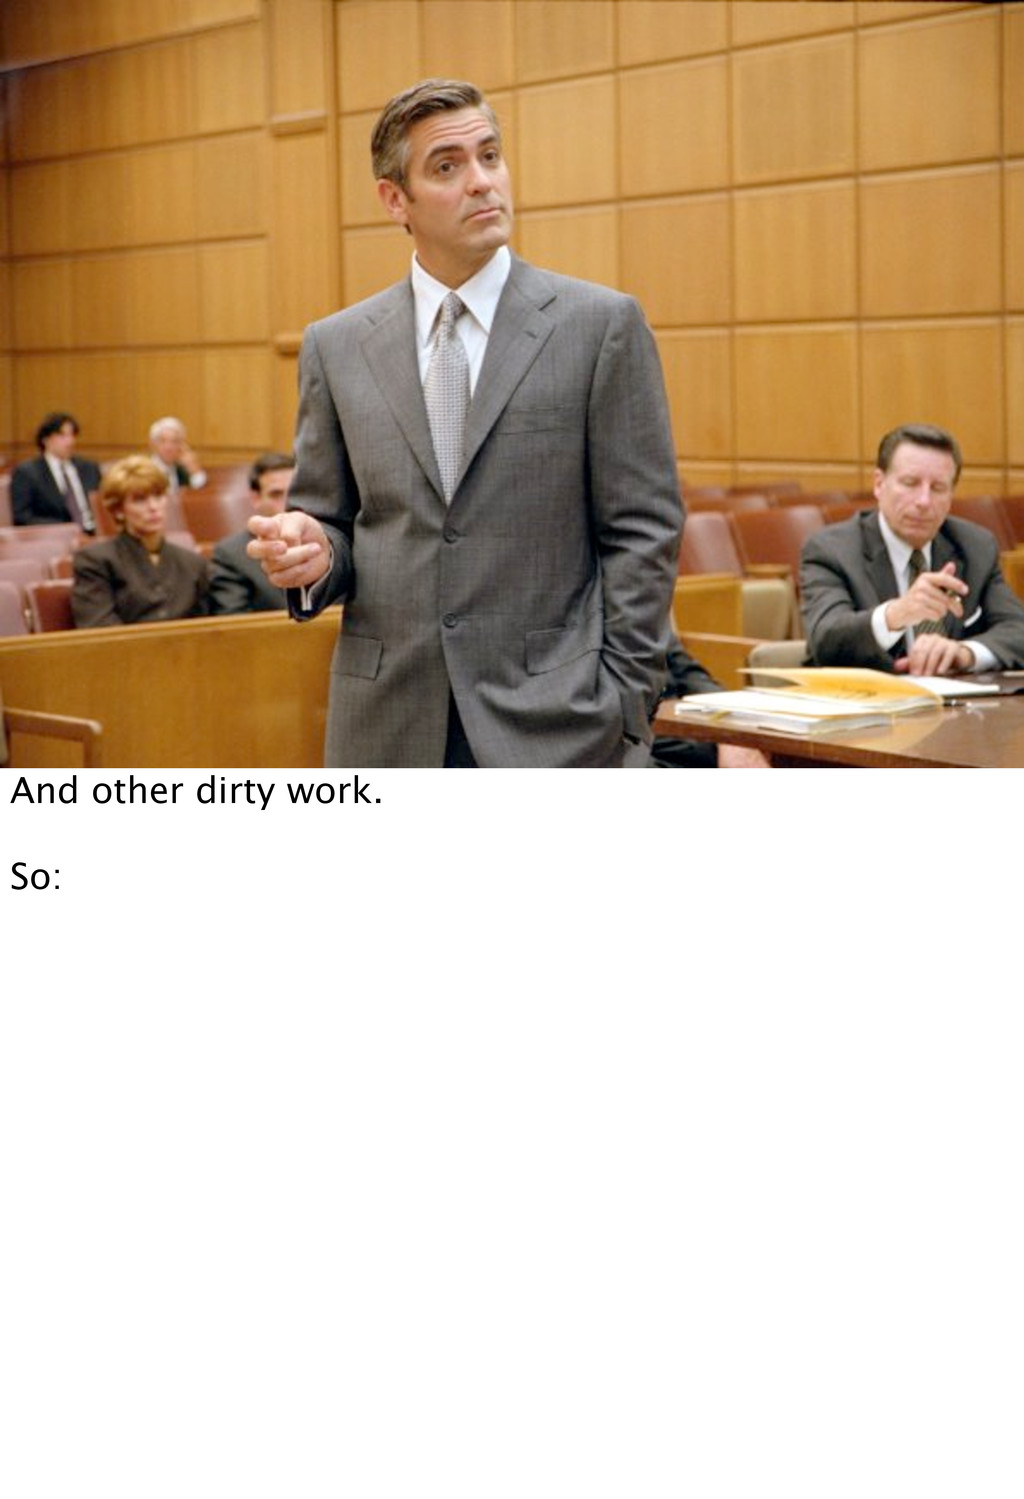 And other dirty work. So: